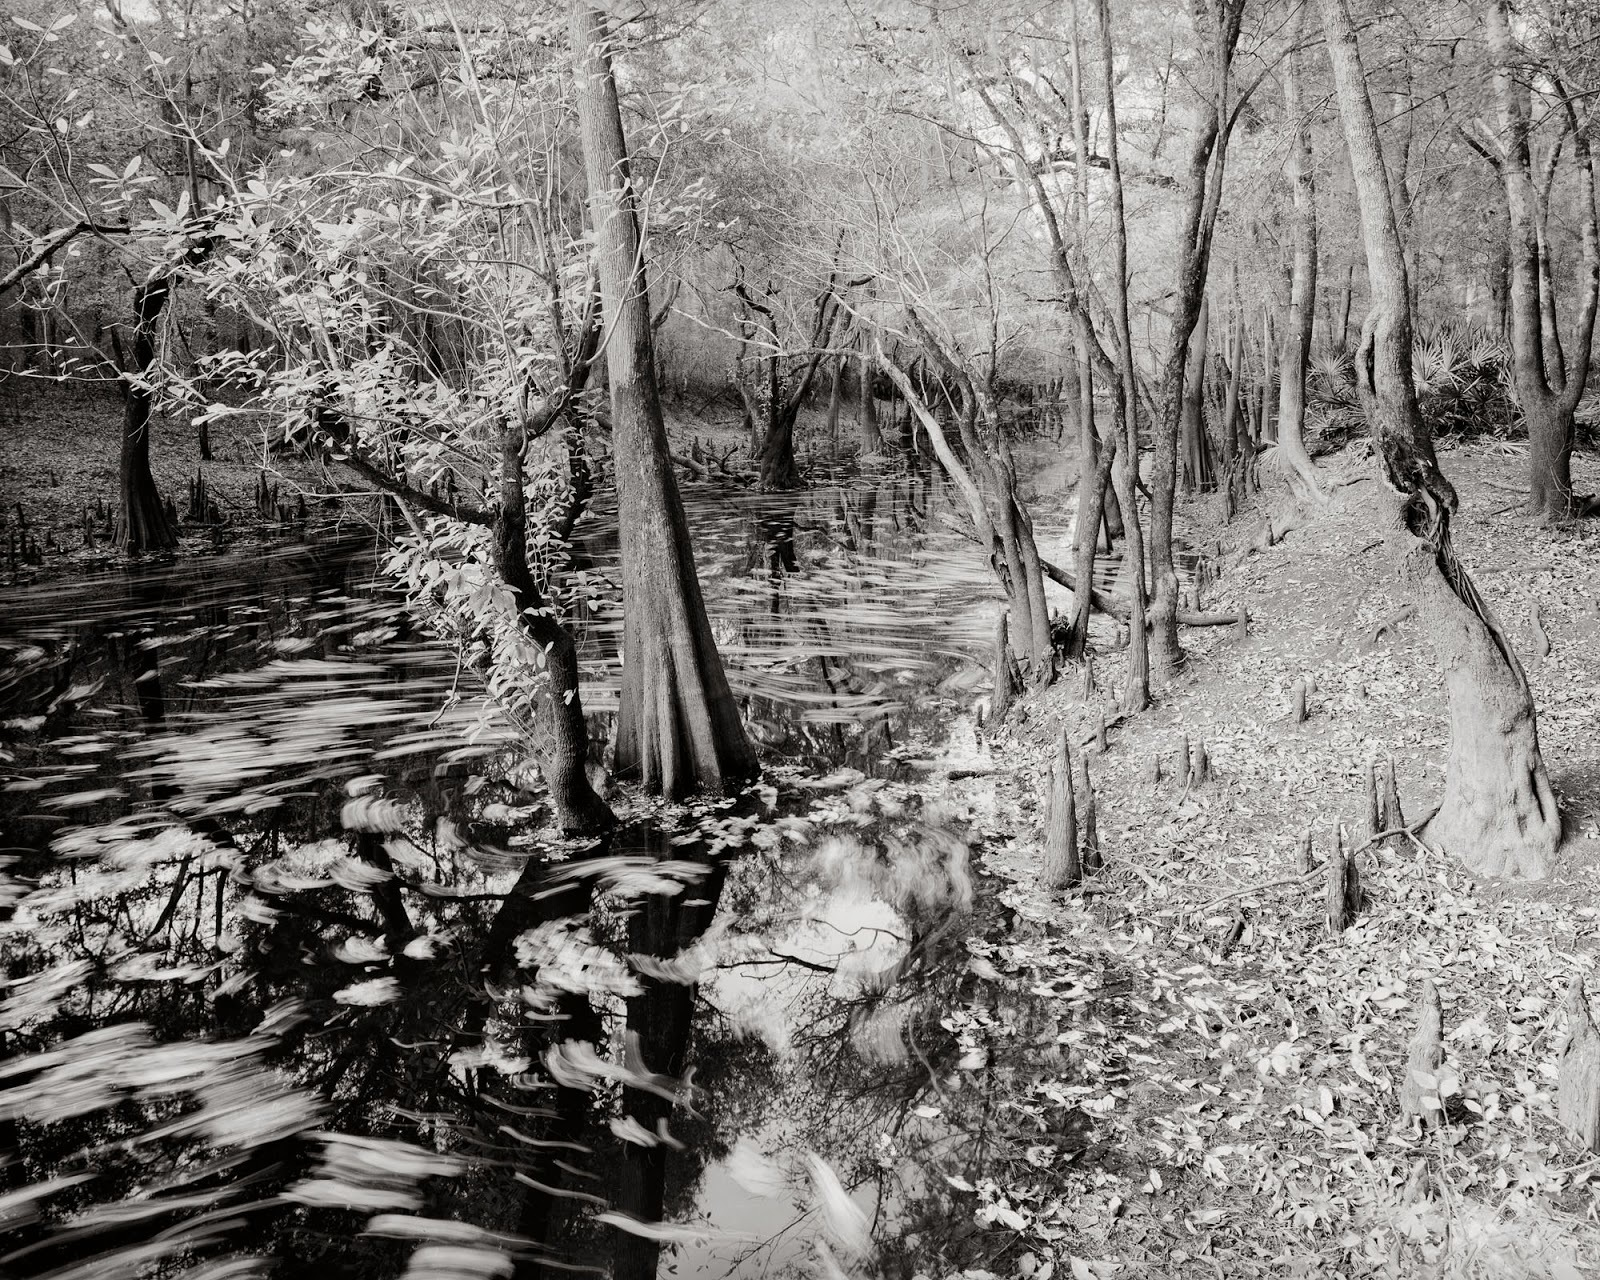 1600x1280 Cypress shoreline, in River Pictures, by Bryan Garris, 8 February 2016